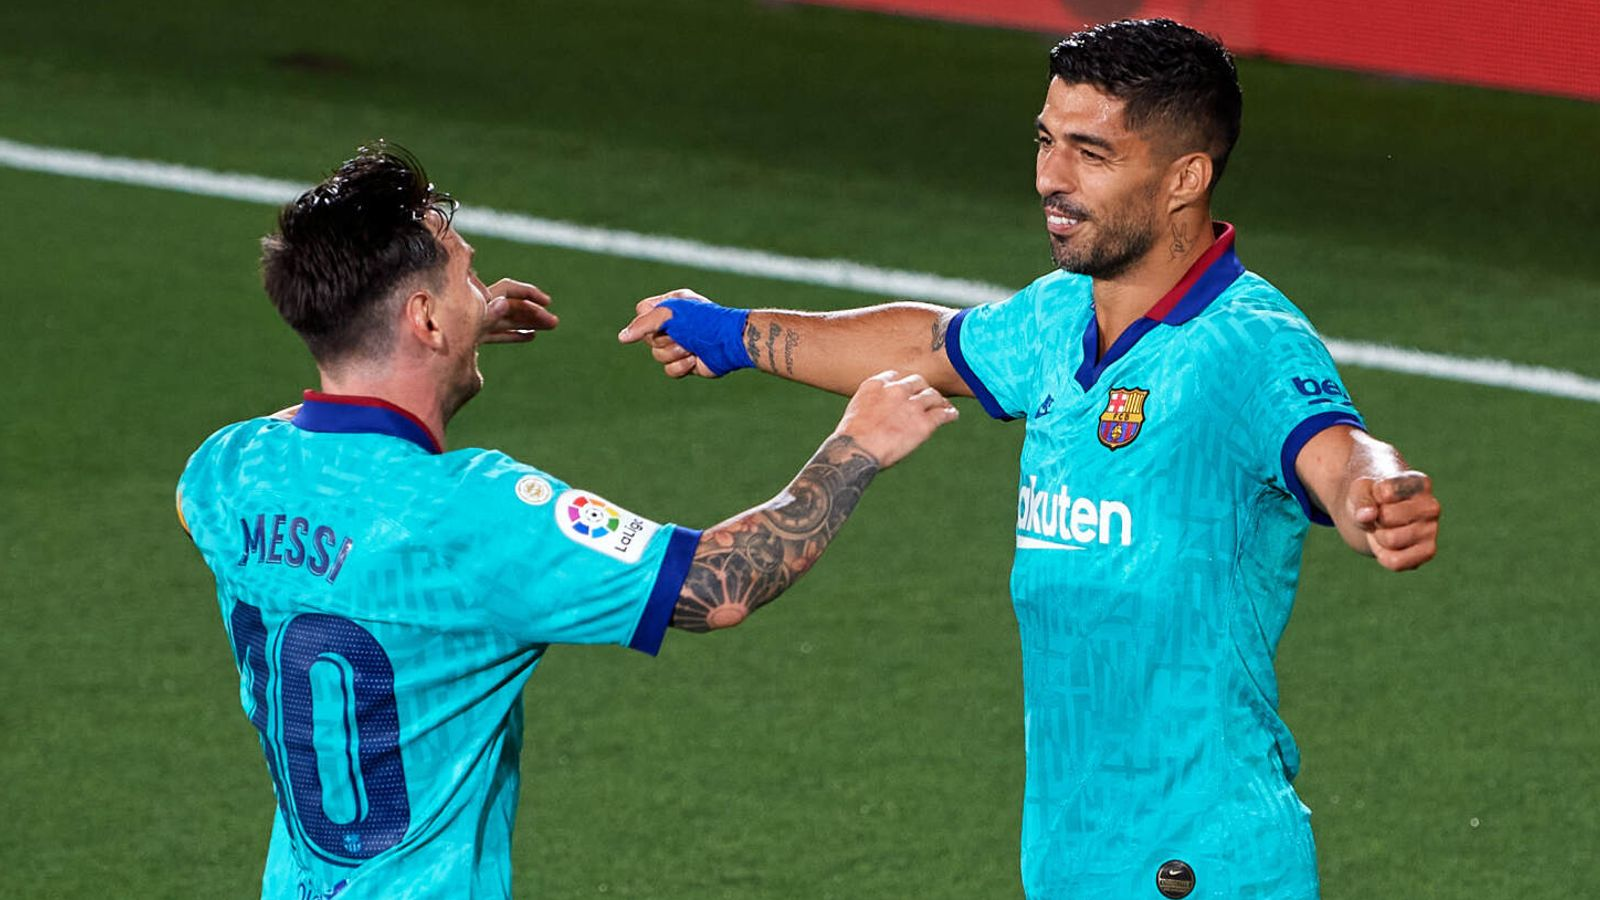 Lionel Messi: Luis Suarez should not have been 'pushed out' of Barcelona